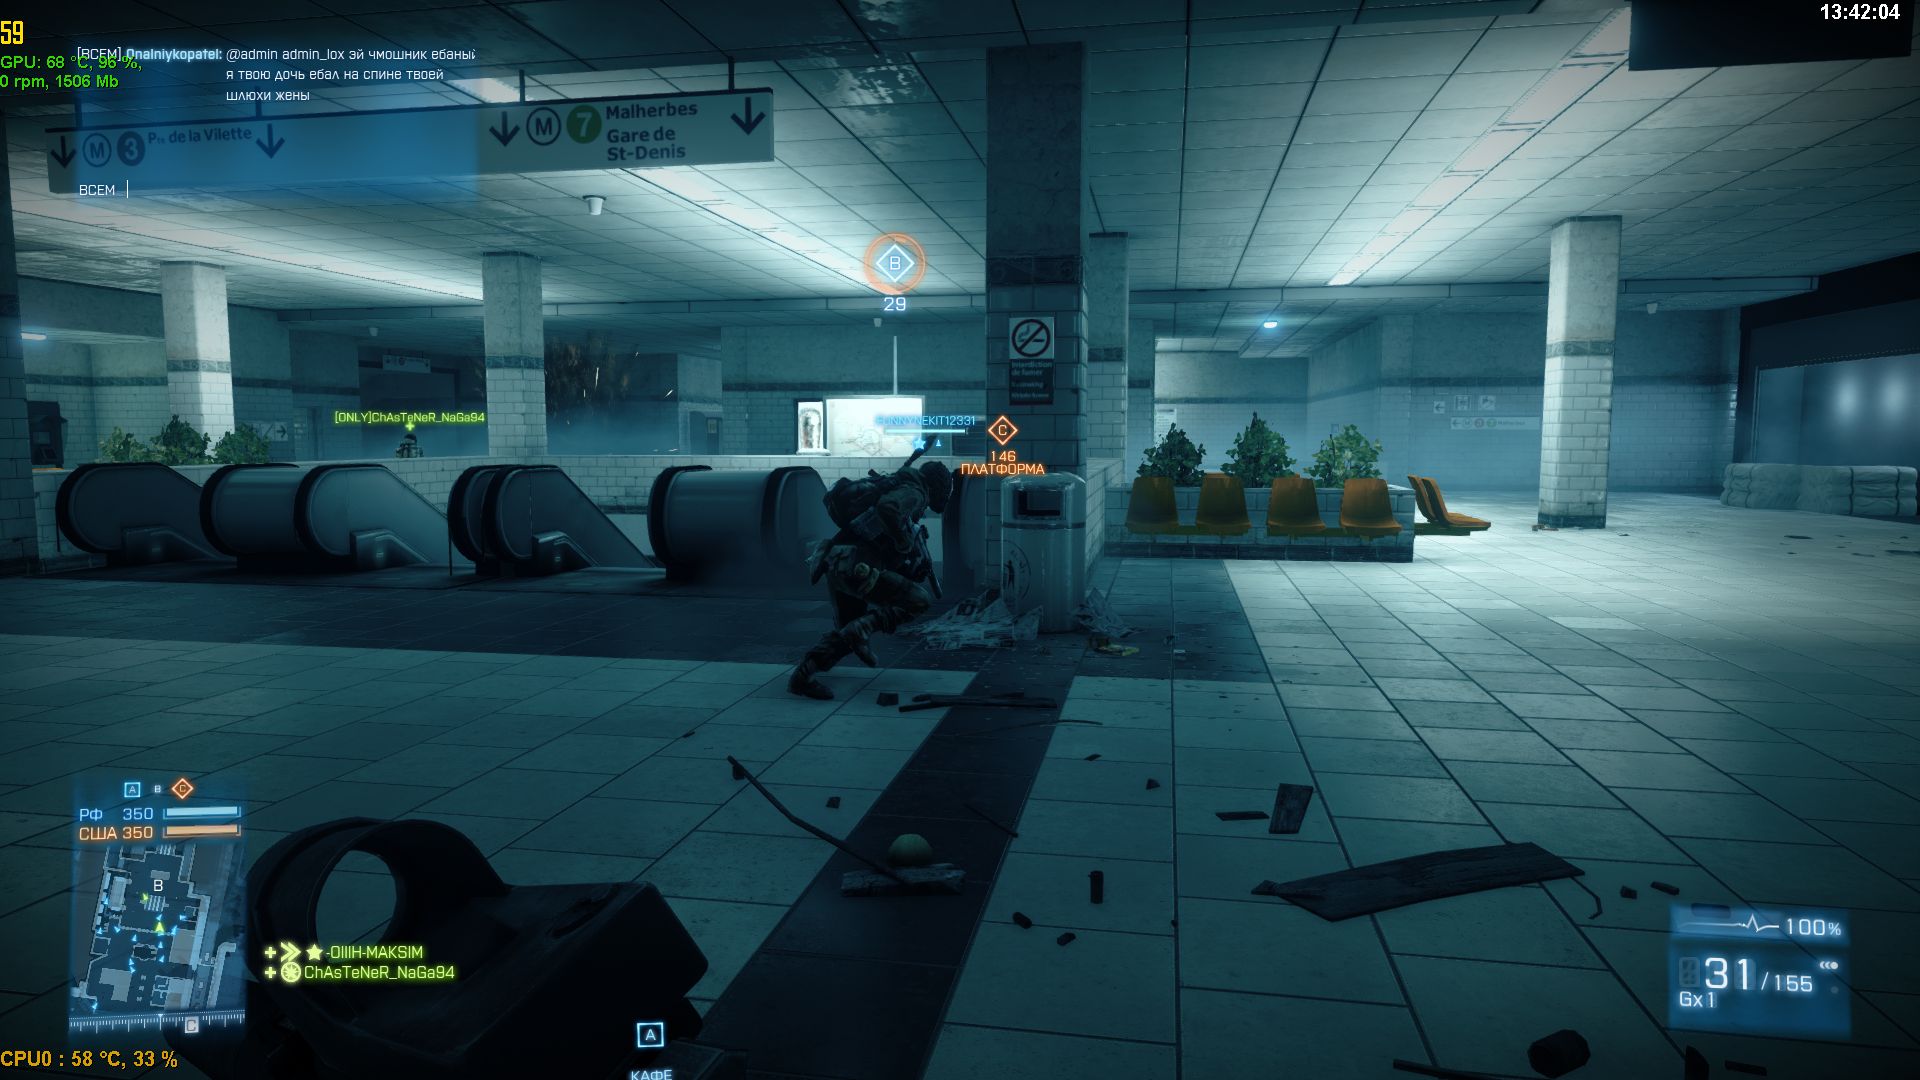 bf3_2014-11-30_13-42-04.png